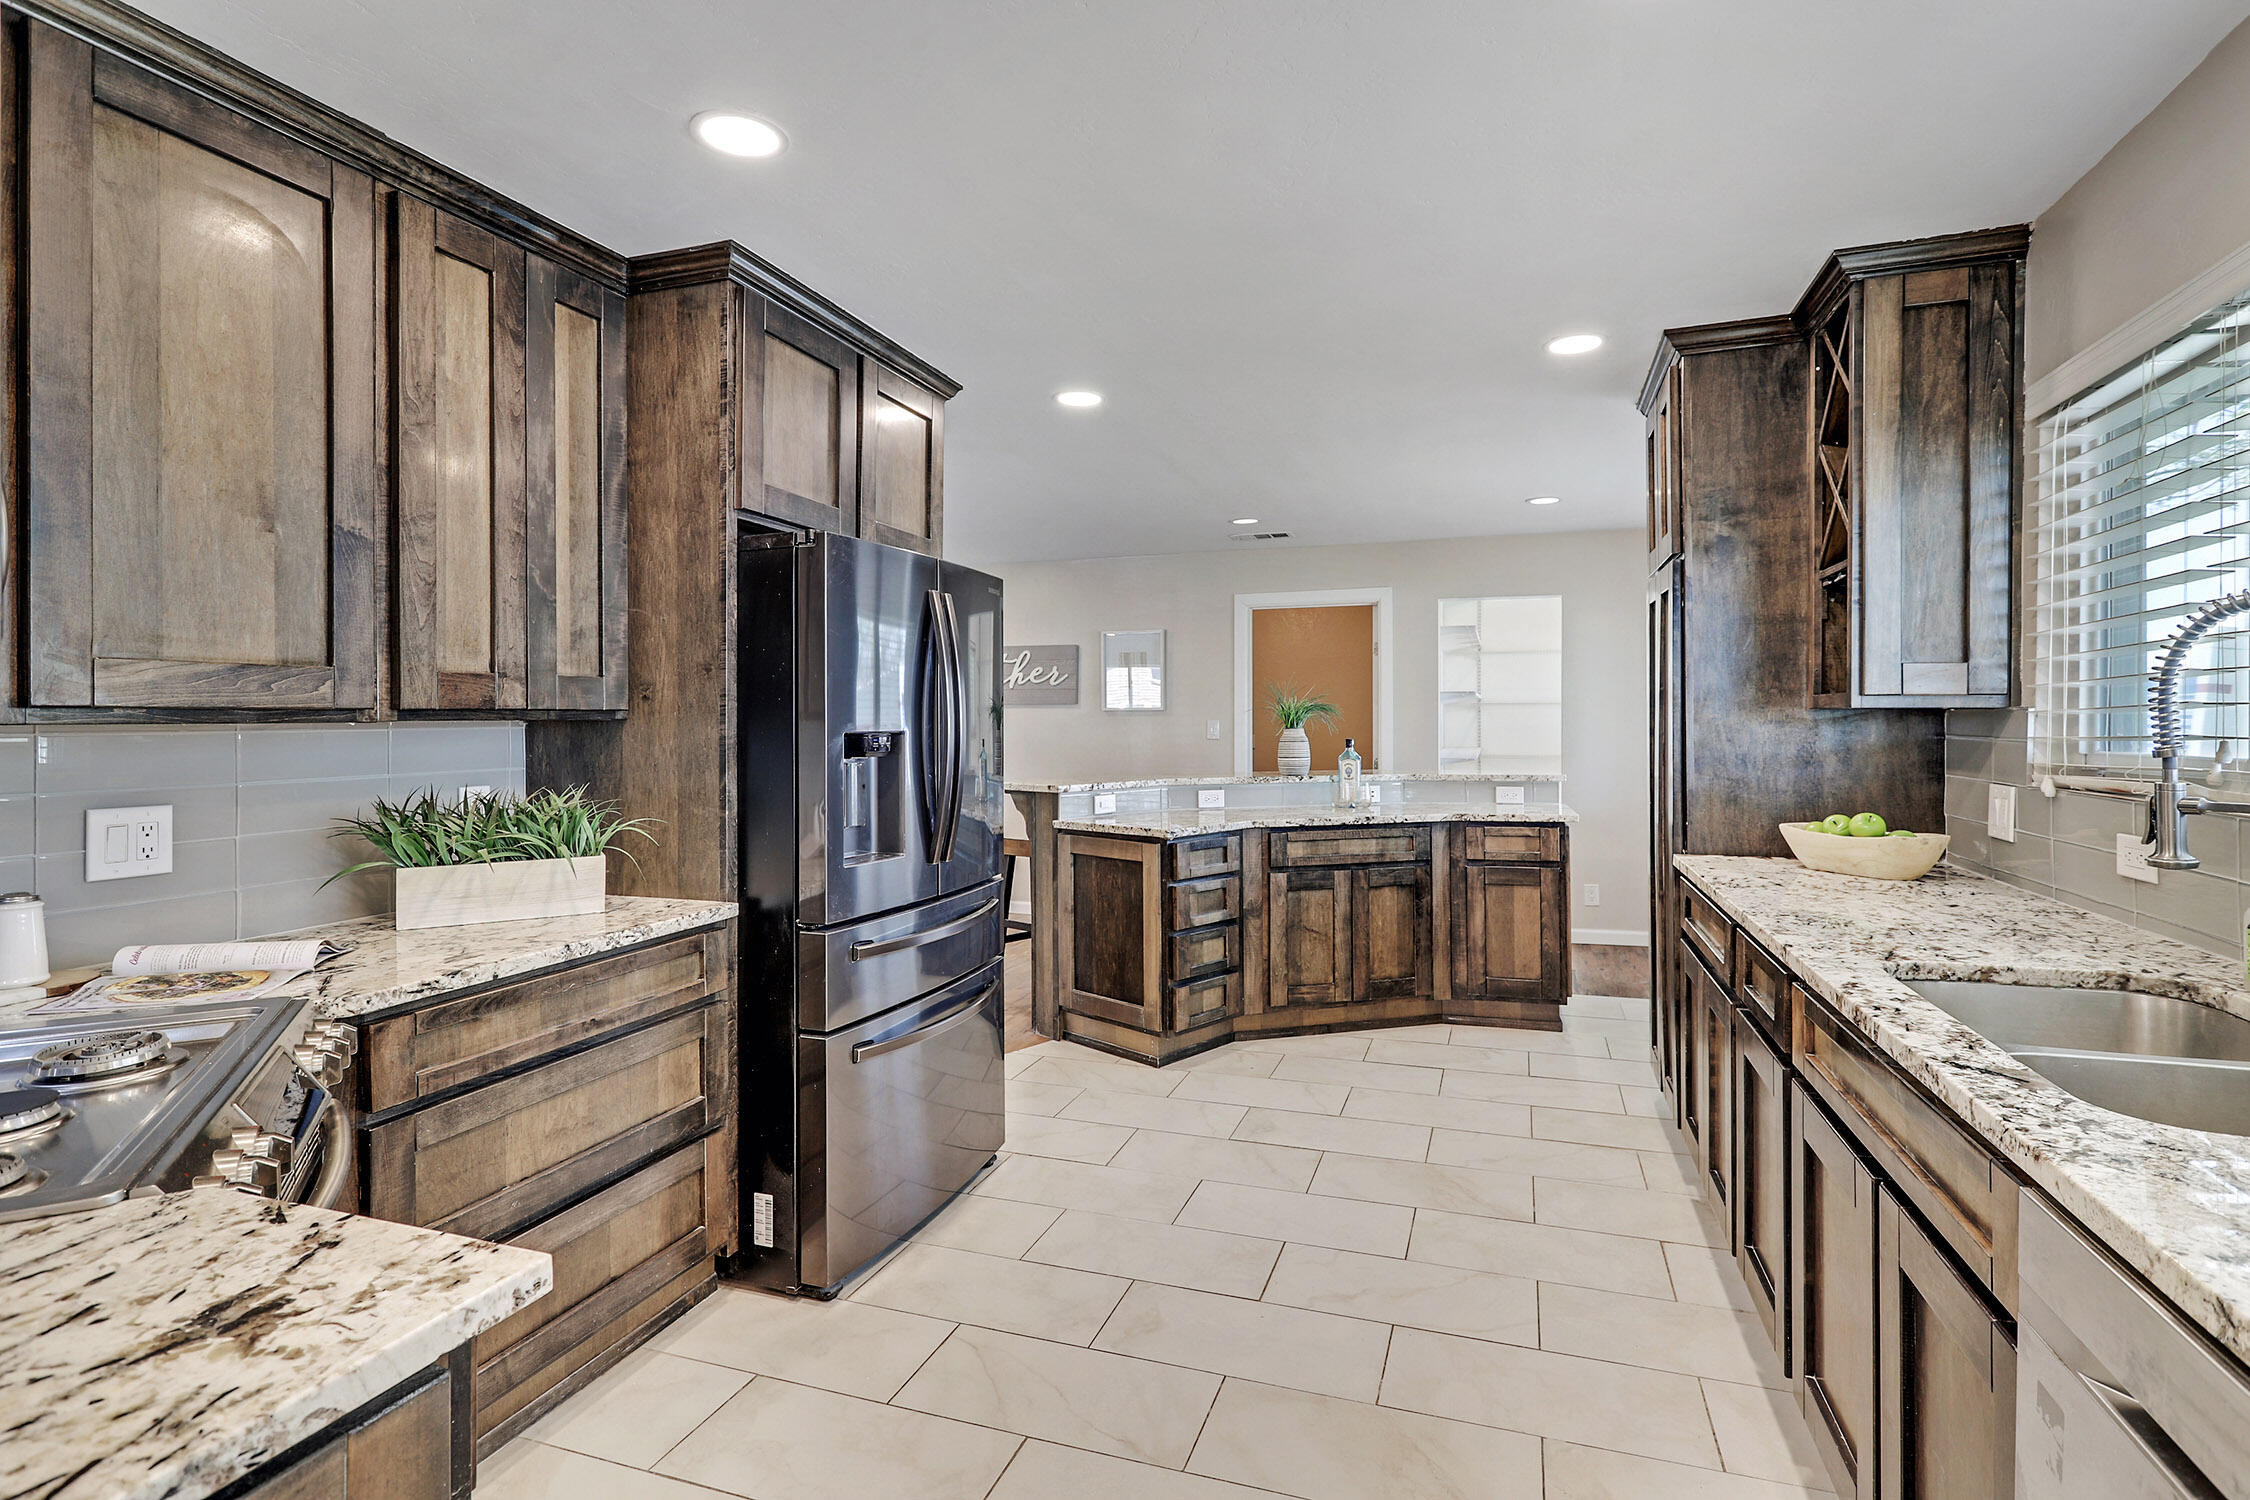 Open House this coming Saturday and Sunday 12-2 pm. Custom uptown gem! Great location in an established neighborhood. This home has been totally updated throughout. Beautiful kitchen with custom cabinets high-end granite,  dimmable LED lighting throughout house. Huge master suite incredible custom master shower with multiple shower heads, large walk-in master closet with built ins. Great covered patio with plenty of room to lounge and entertain. Best yard in the city with 12 putt putt holes for the family. Artificial turf front and back on a huge corner lot.  Backyard access is a plus.